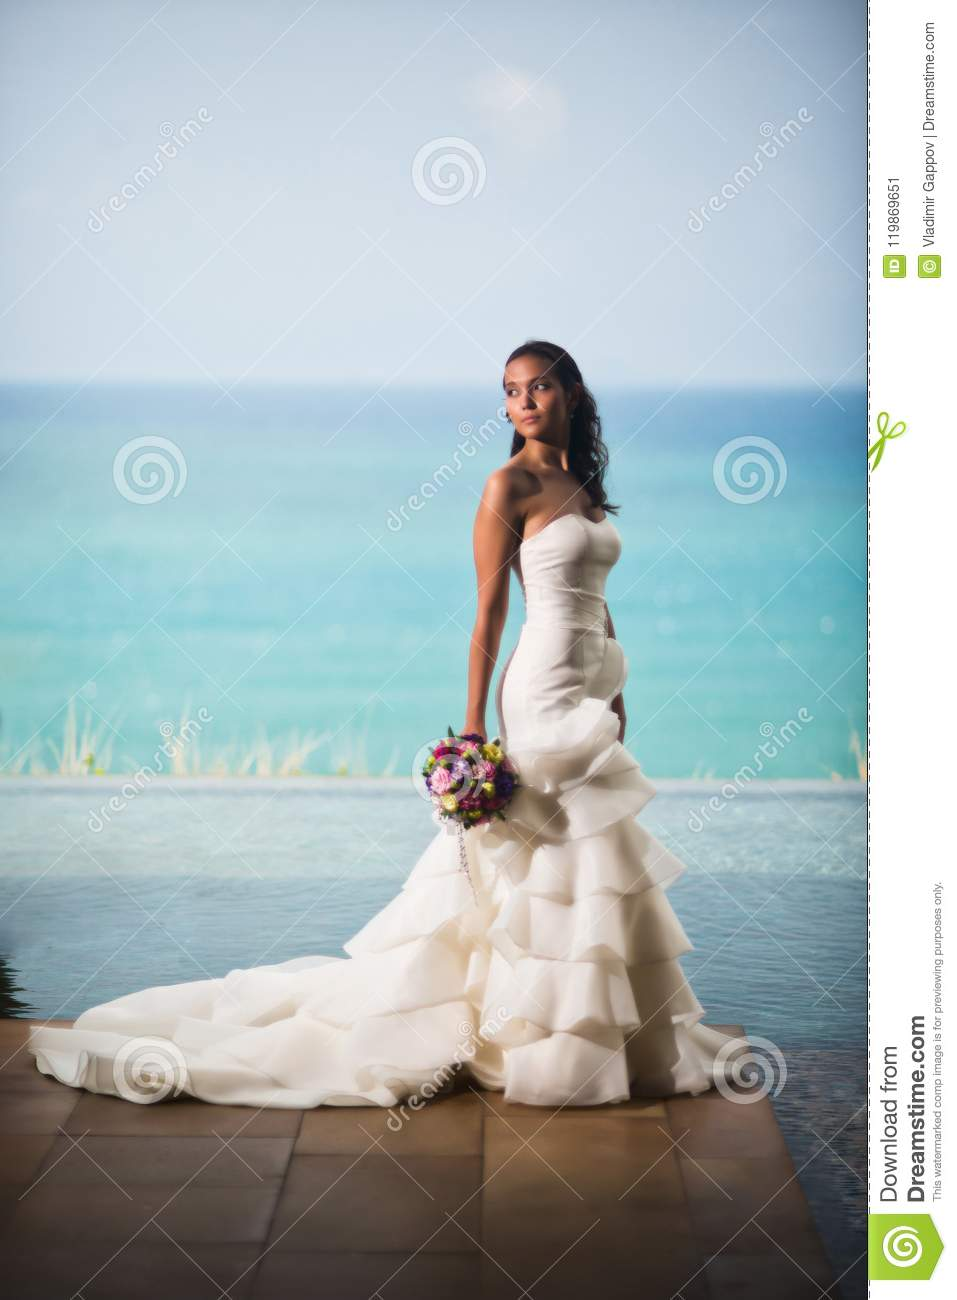 Bride in a luxurious white dress stands on the background of the ocean and looks away